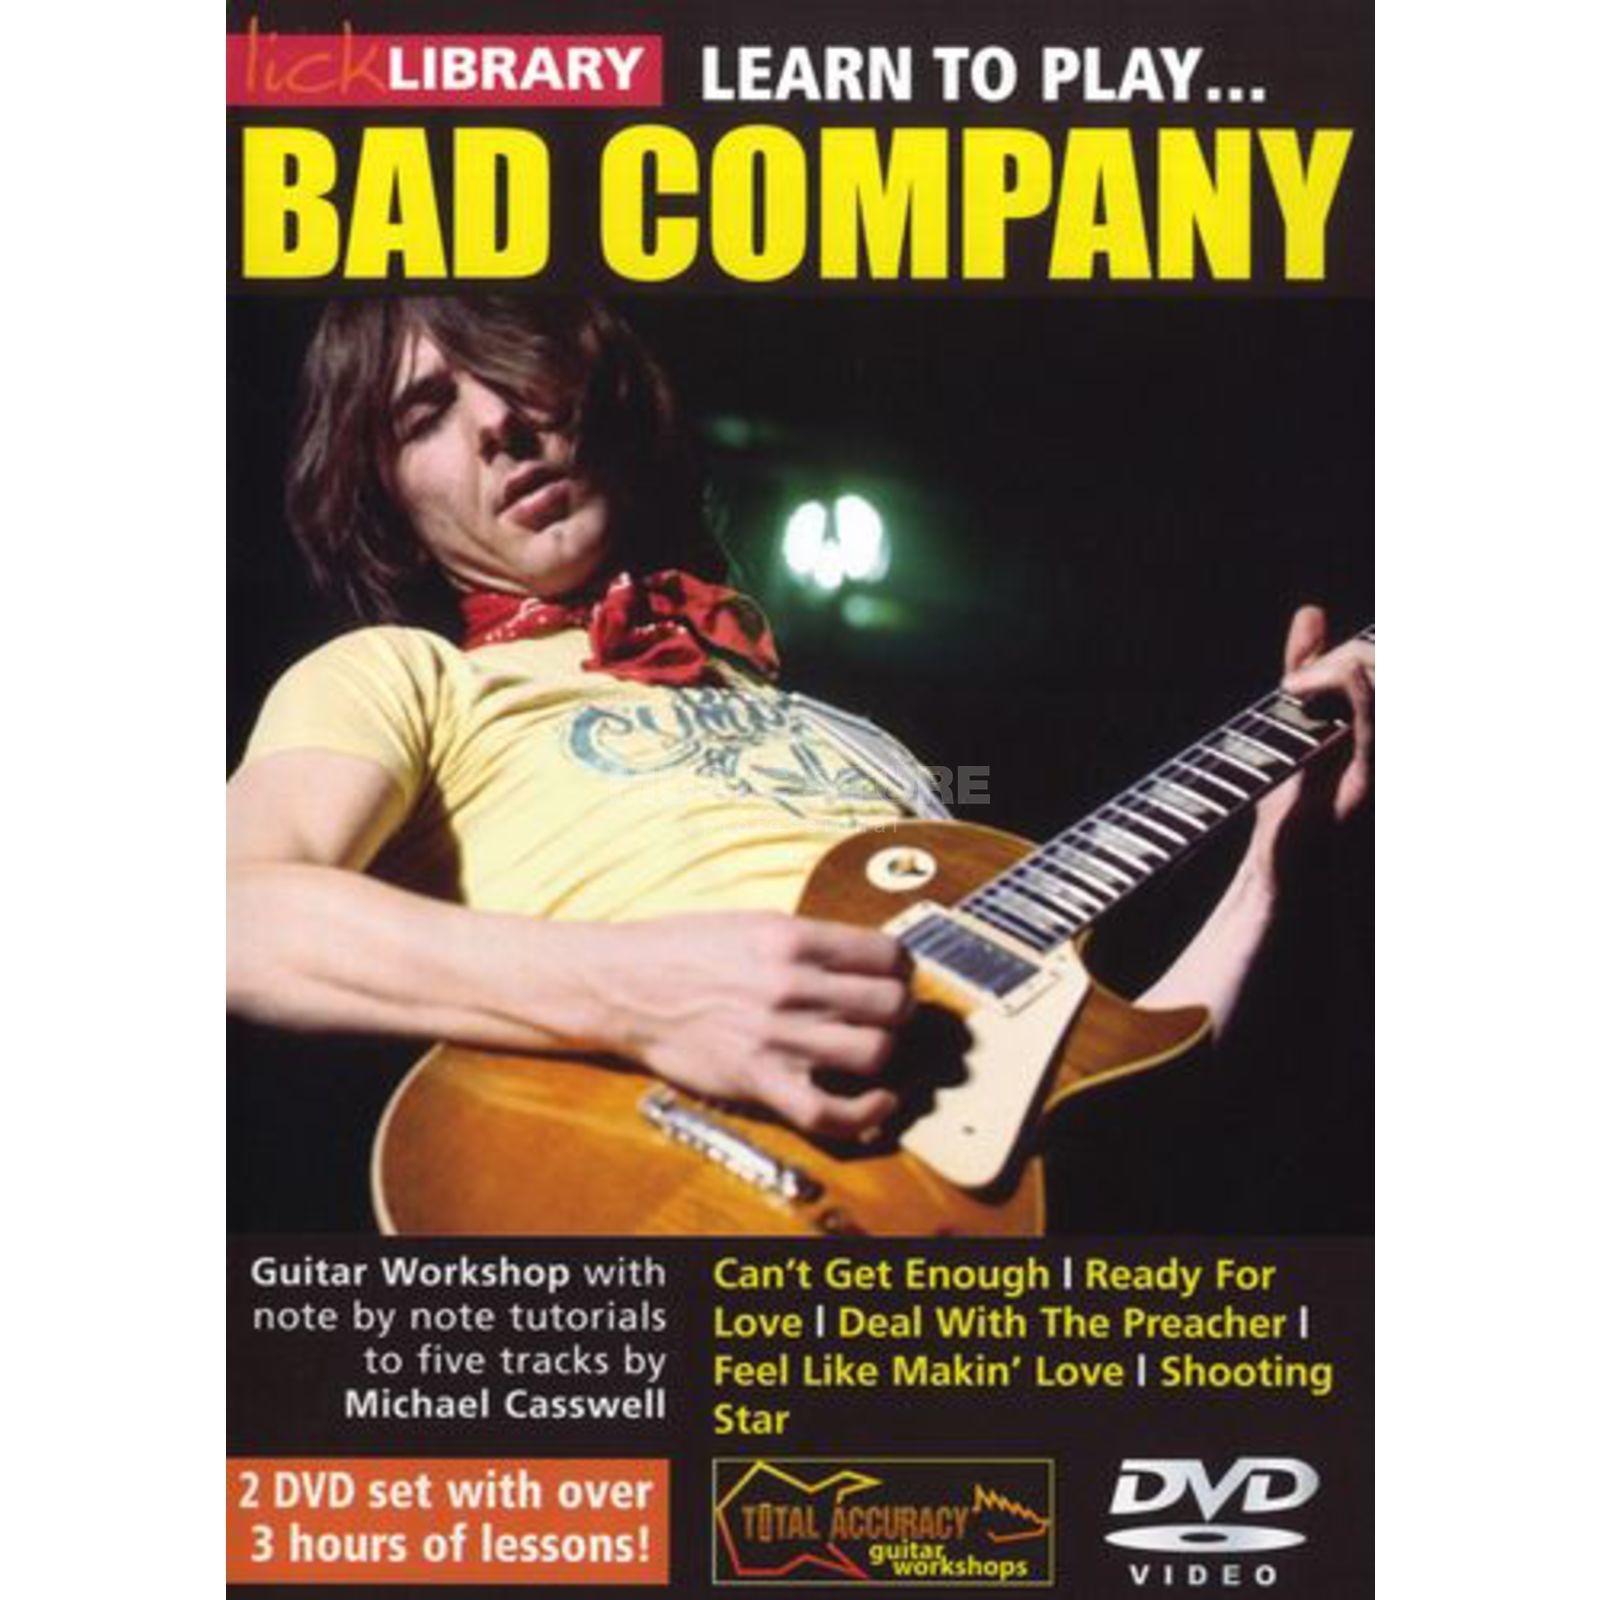 Roadrock International Lick Library: Learn To Play Bad Company DVD Produktbillede